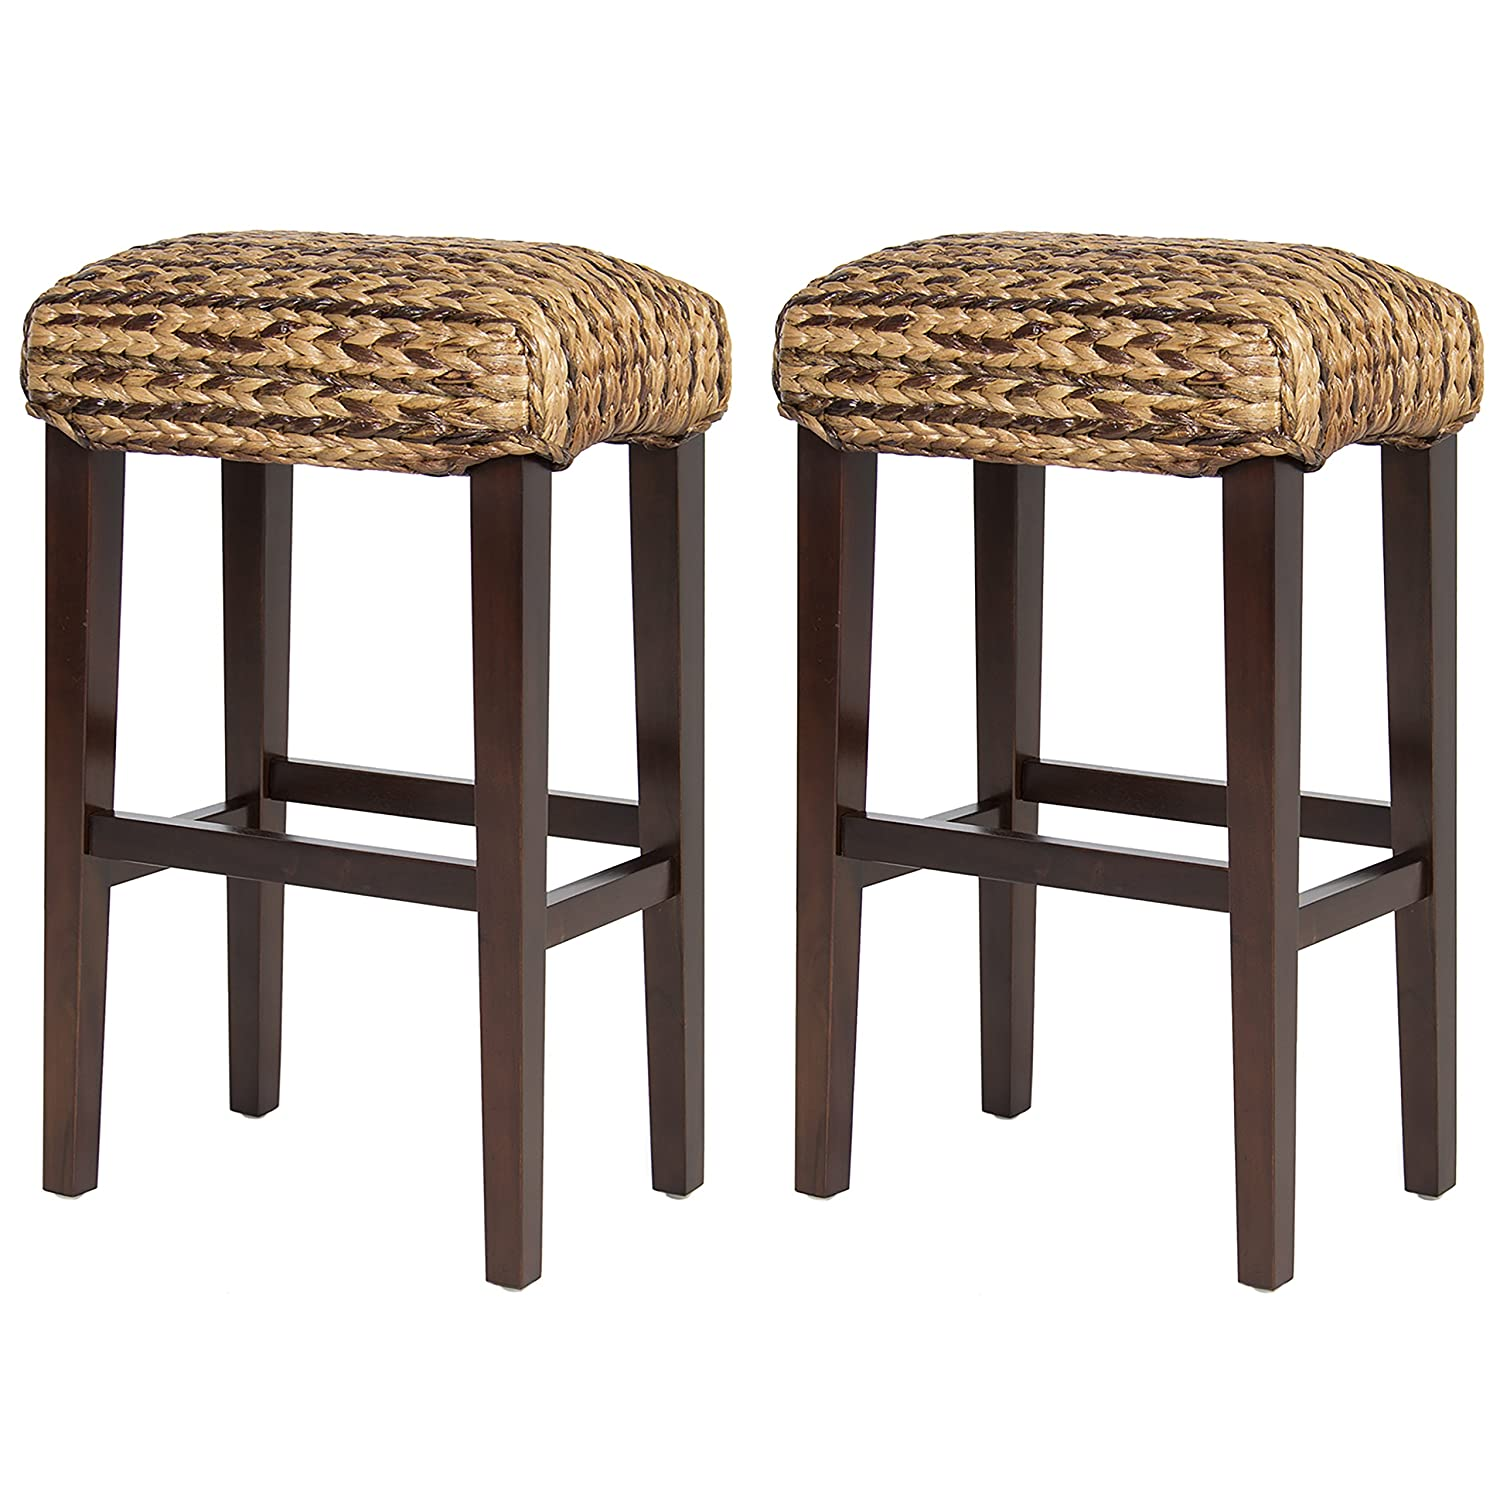 amazoncom best choice products bcp set of 2 hand woven seagrass bar stools mahogany wood frame bar height home u0026 kitchen